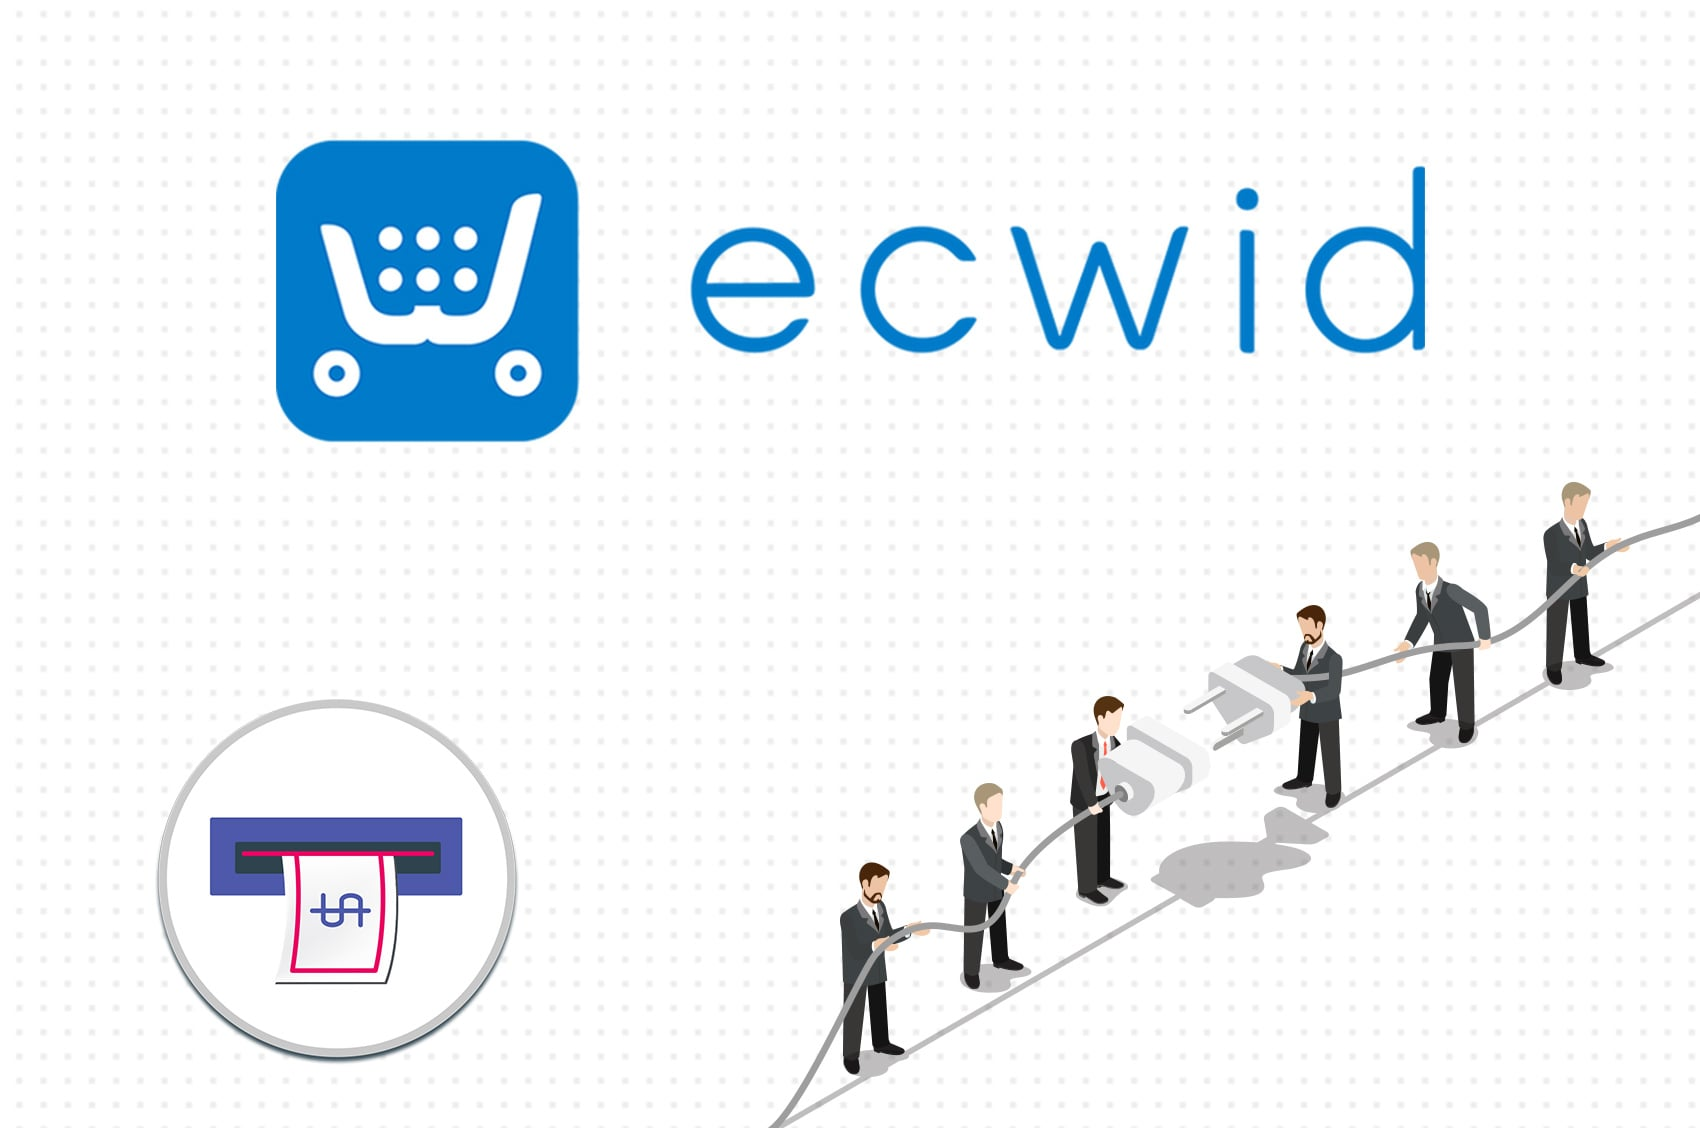 Ecwid app for shipping